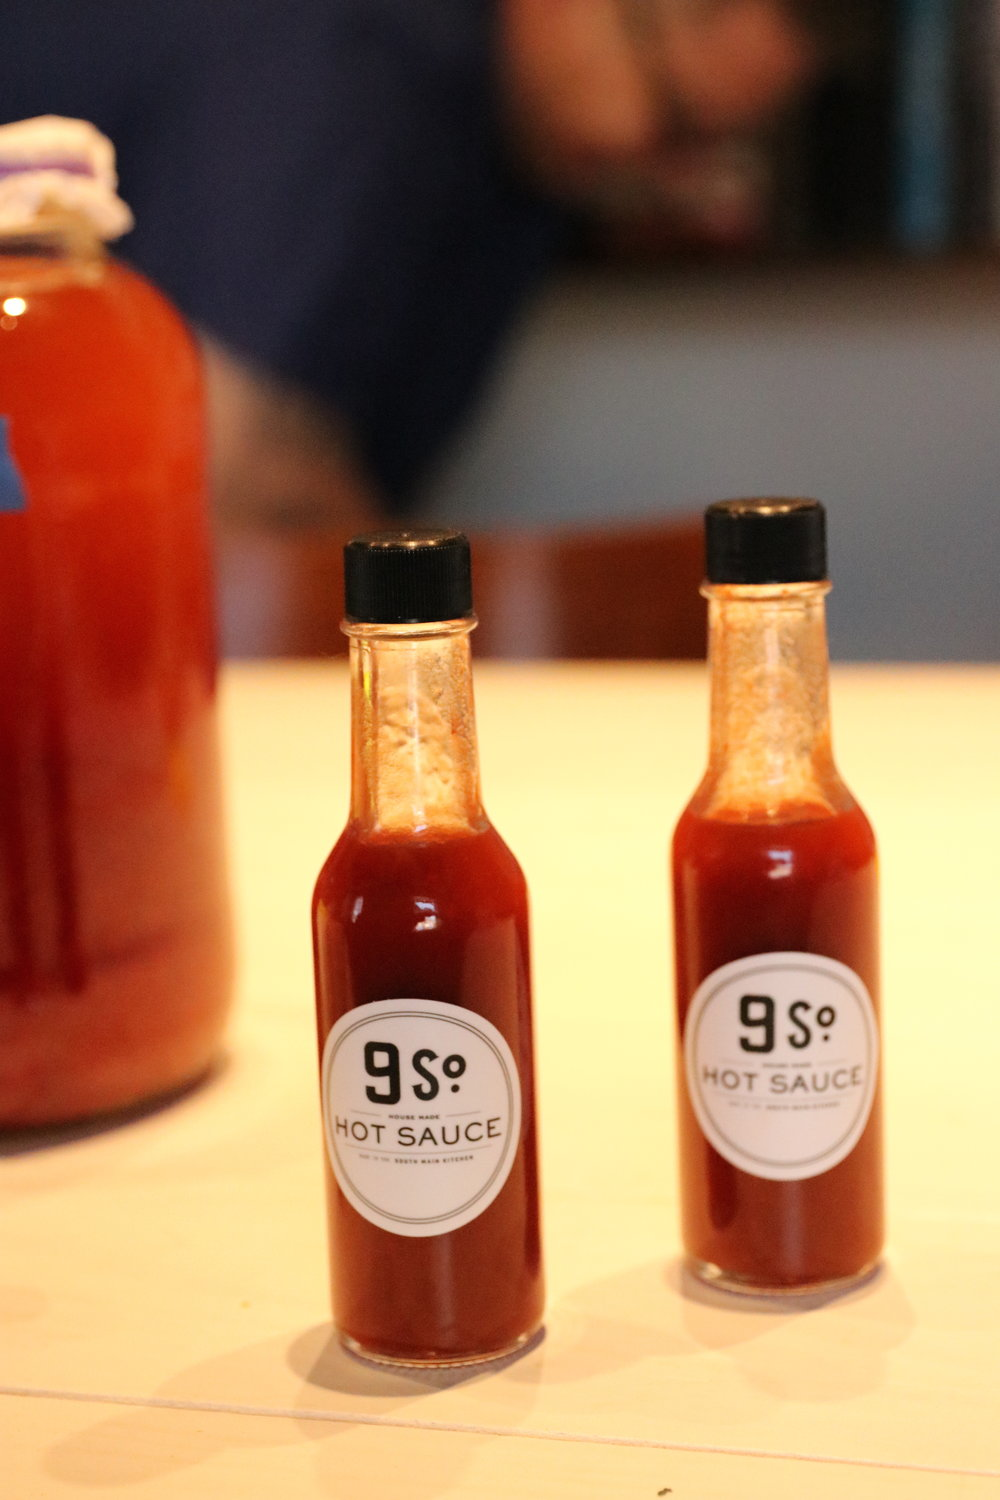 9 South Sauce - Not only are the chefs preserving local Southern goods through seasons as a tribute to Southern tradition, but they are taking it all the way with their in house small-batch hot sauce, 9 South Sauce.